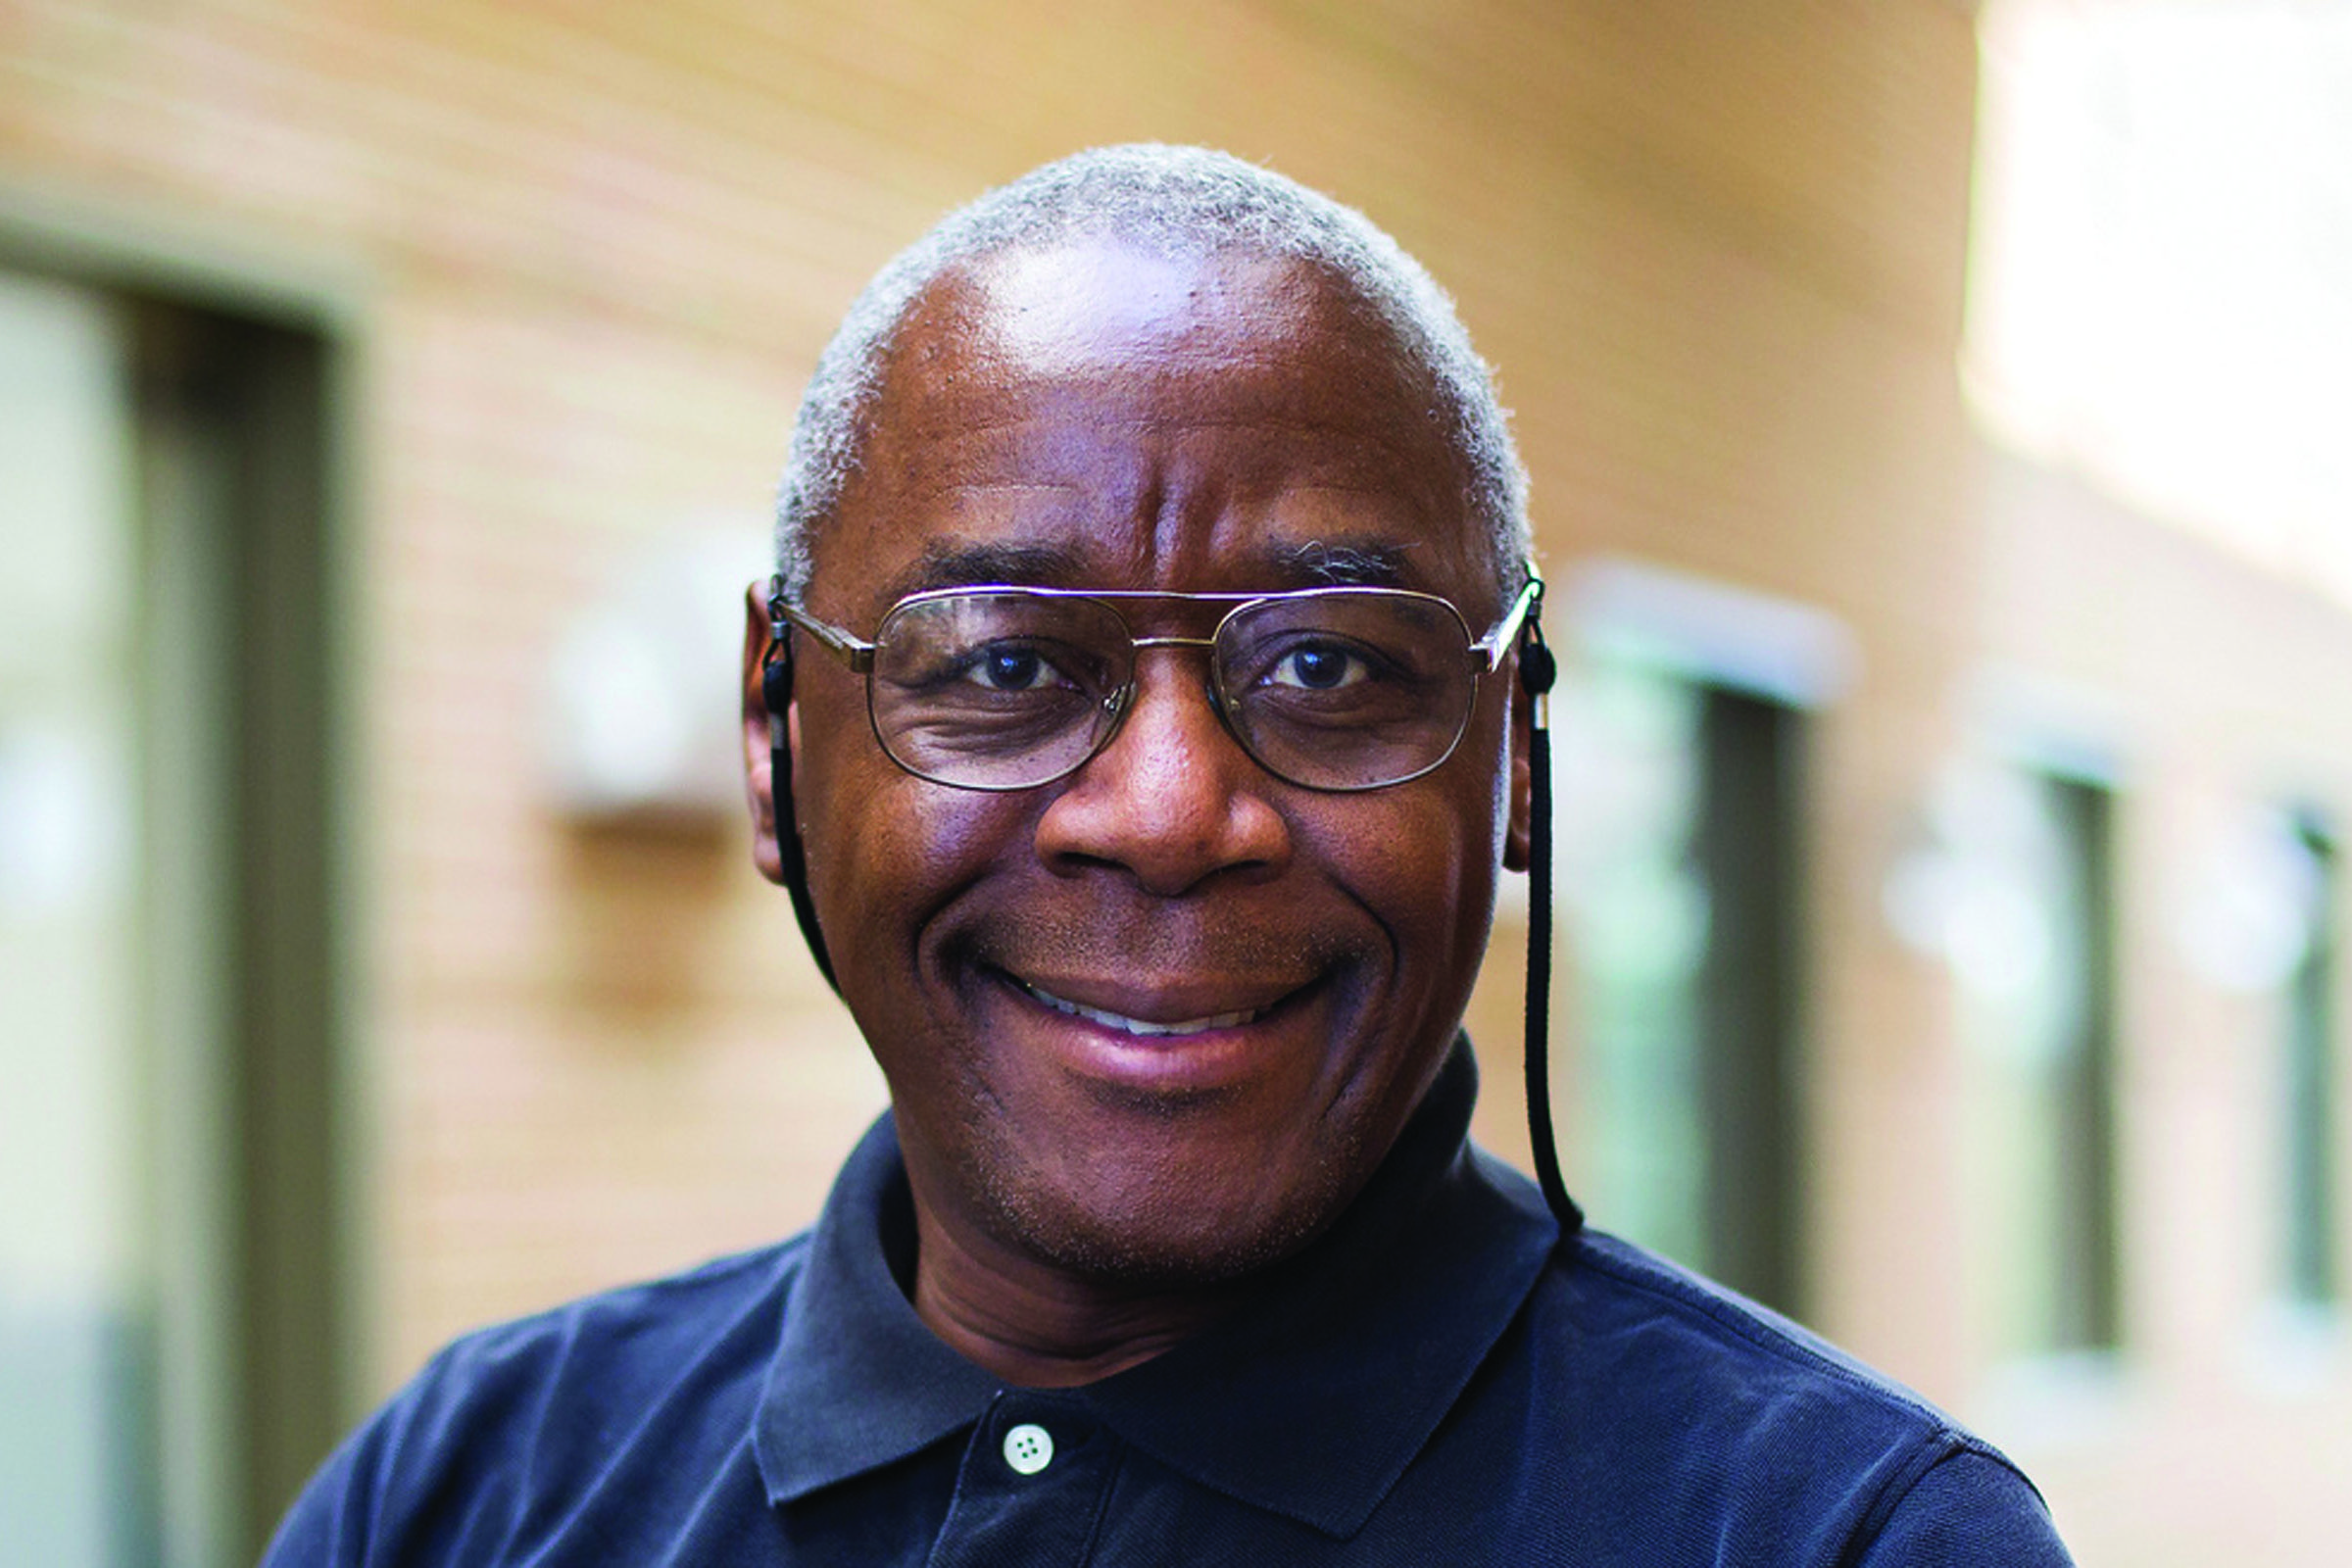 Aerospace Professor Pierre T. Kabamba